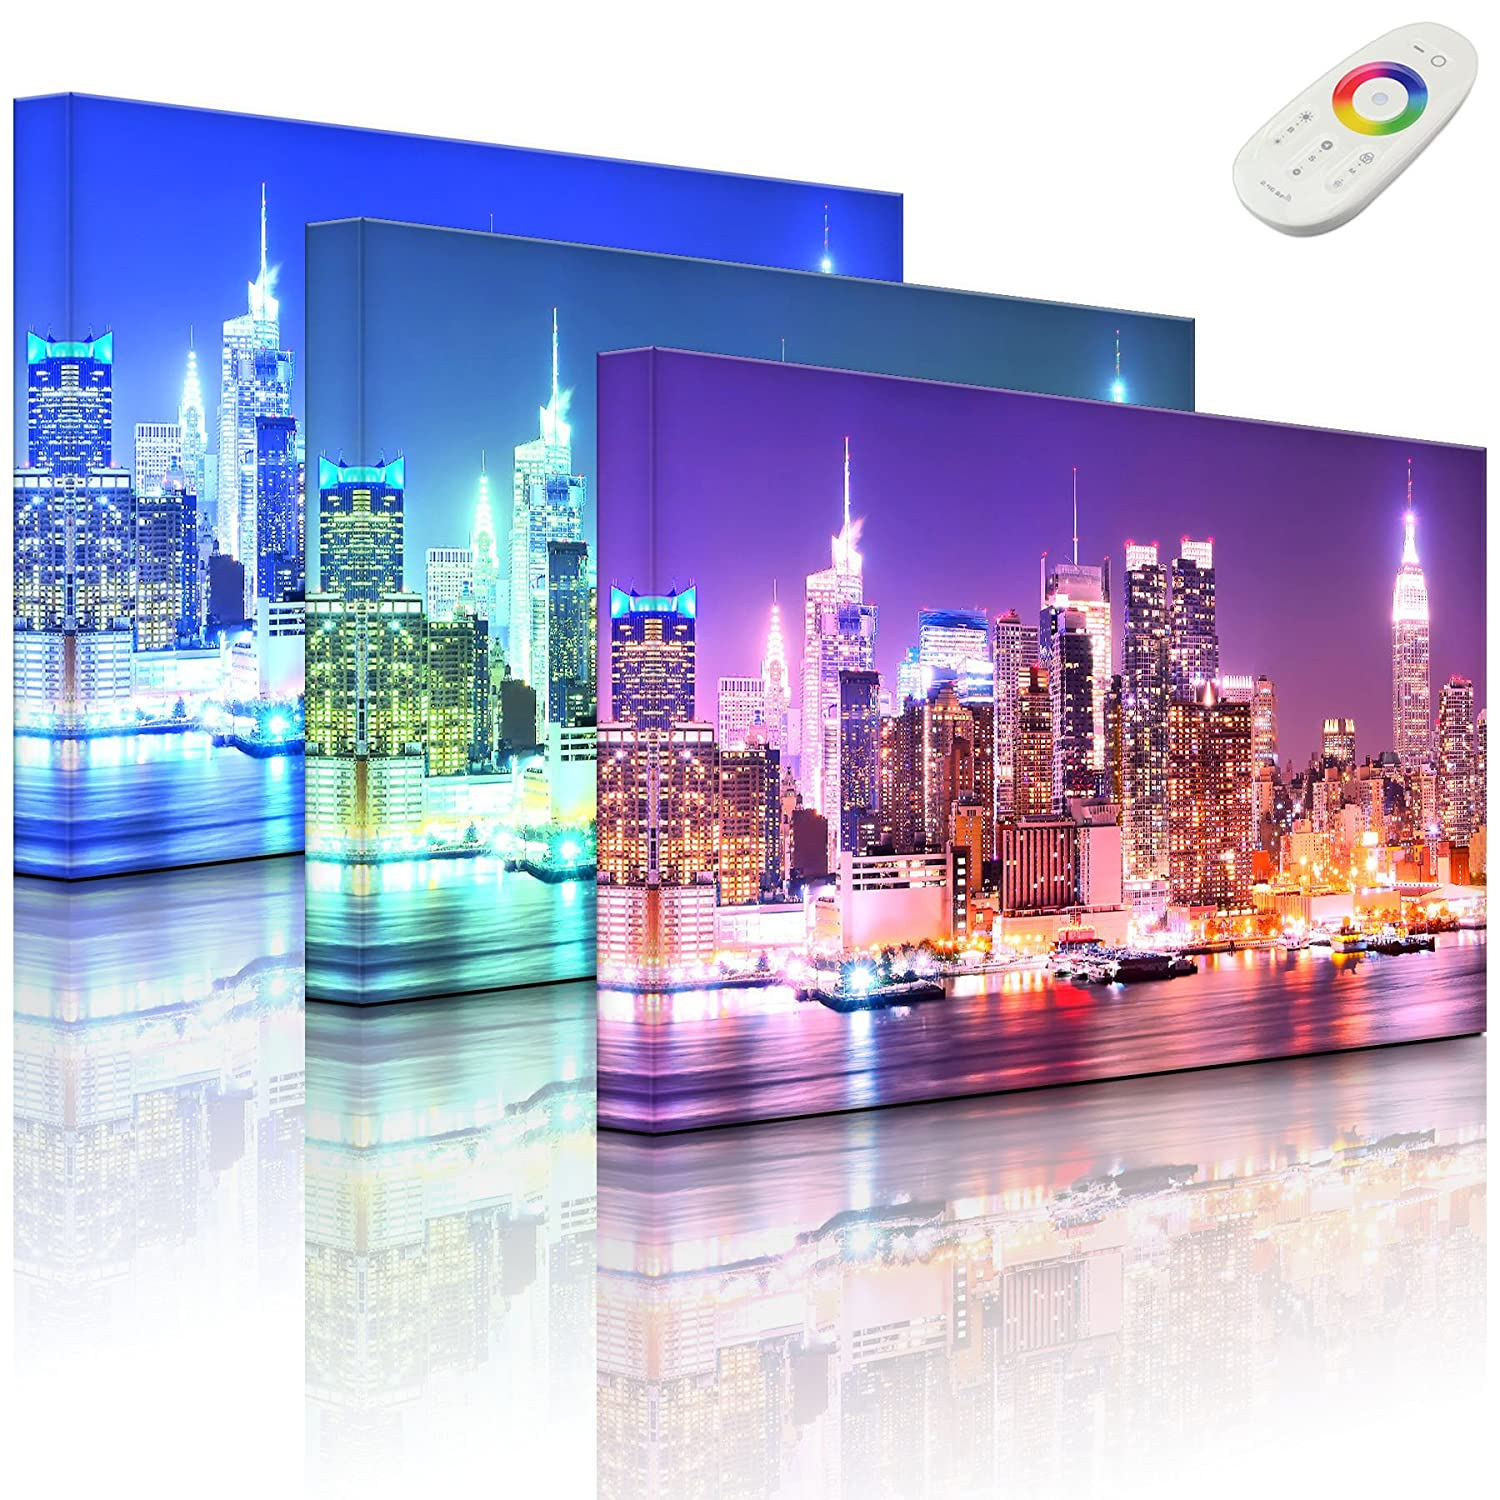 lightbox-multicolor.com LED picture with lighting - New York City, Skyline Bridge at night - 60 x 40 cm - front lighted Rossteutscher GbR